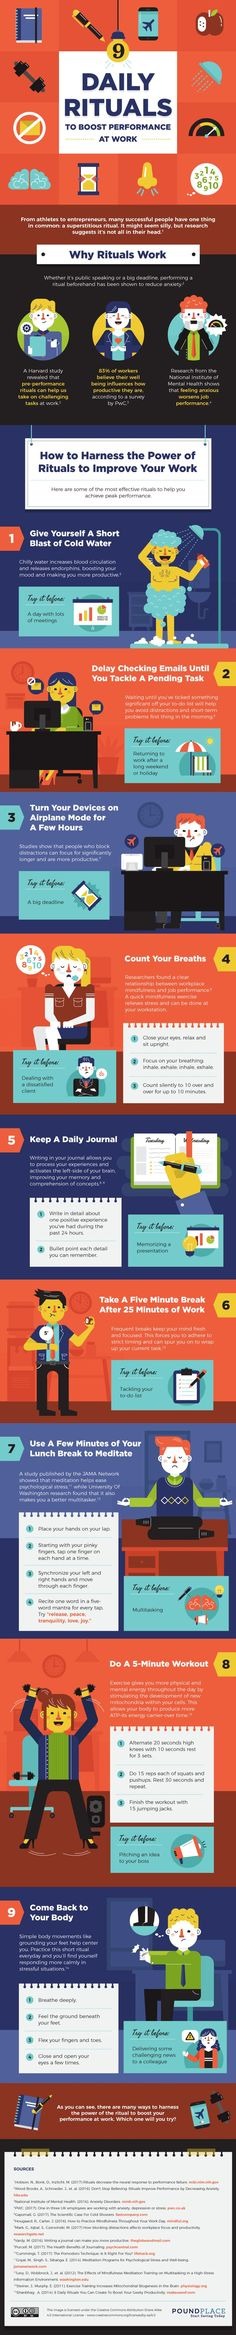 Entrepreneur tips: Incorporating these habits helps you conquer your day. Try a few of the 9 daily rituals on this infographic, and click to blog for more tips for small business owners and bloggers! #entrepreneurship #habits #businessowner #mindfulness #bloggers #infographic